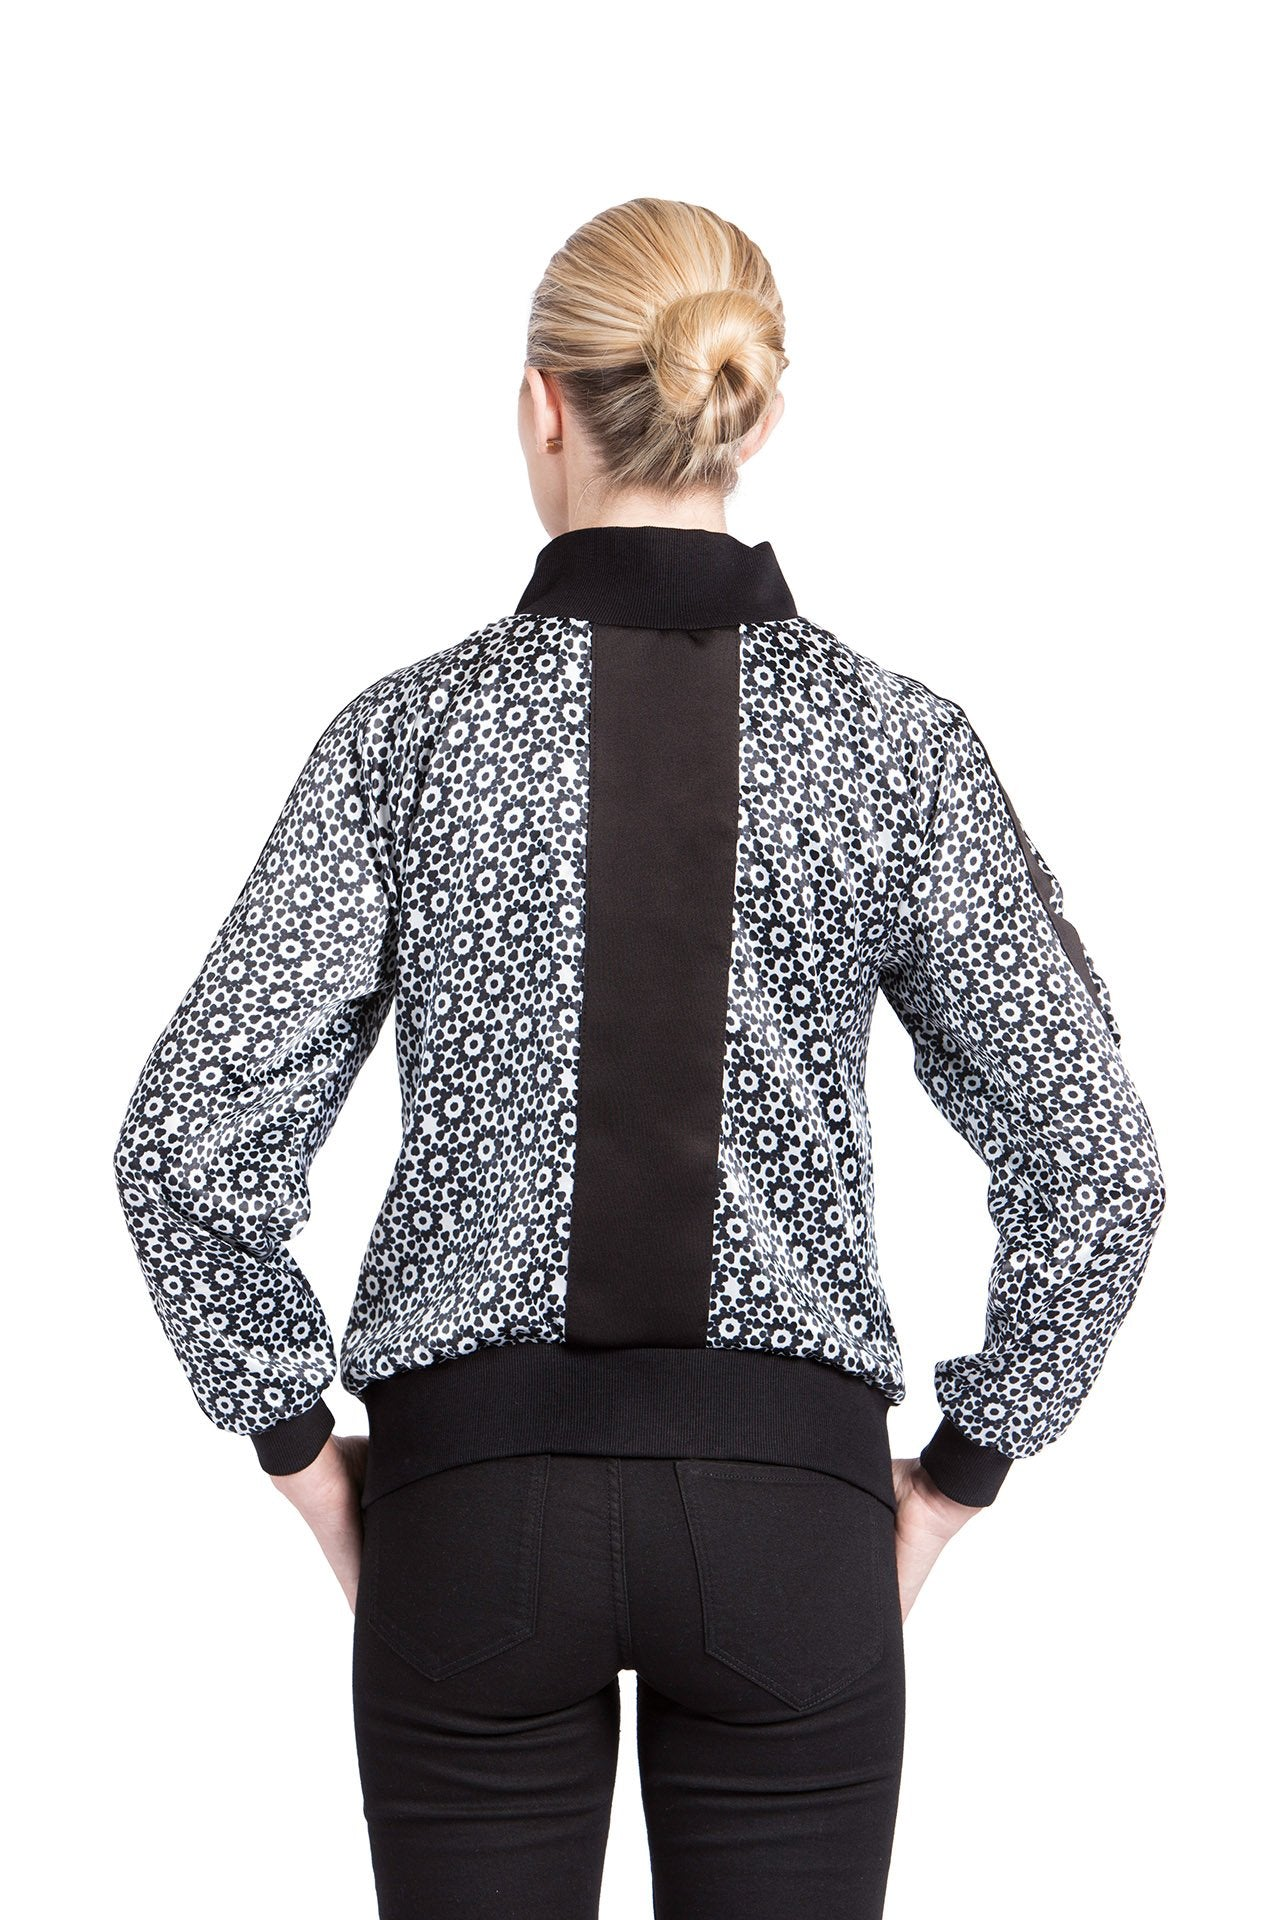 Allover Bomber Jacket- Black Mantra Print Jackets - artTECA